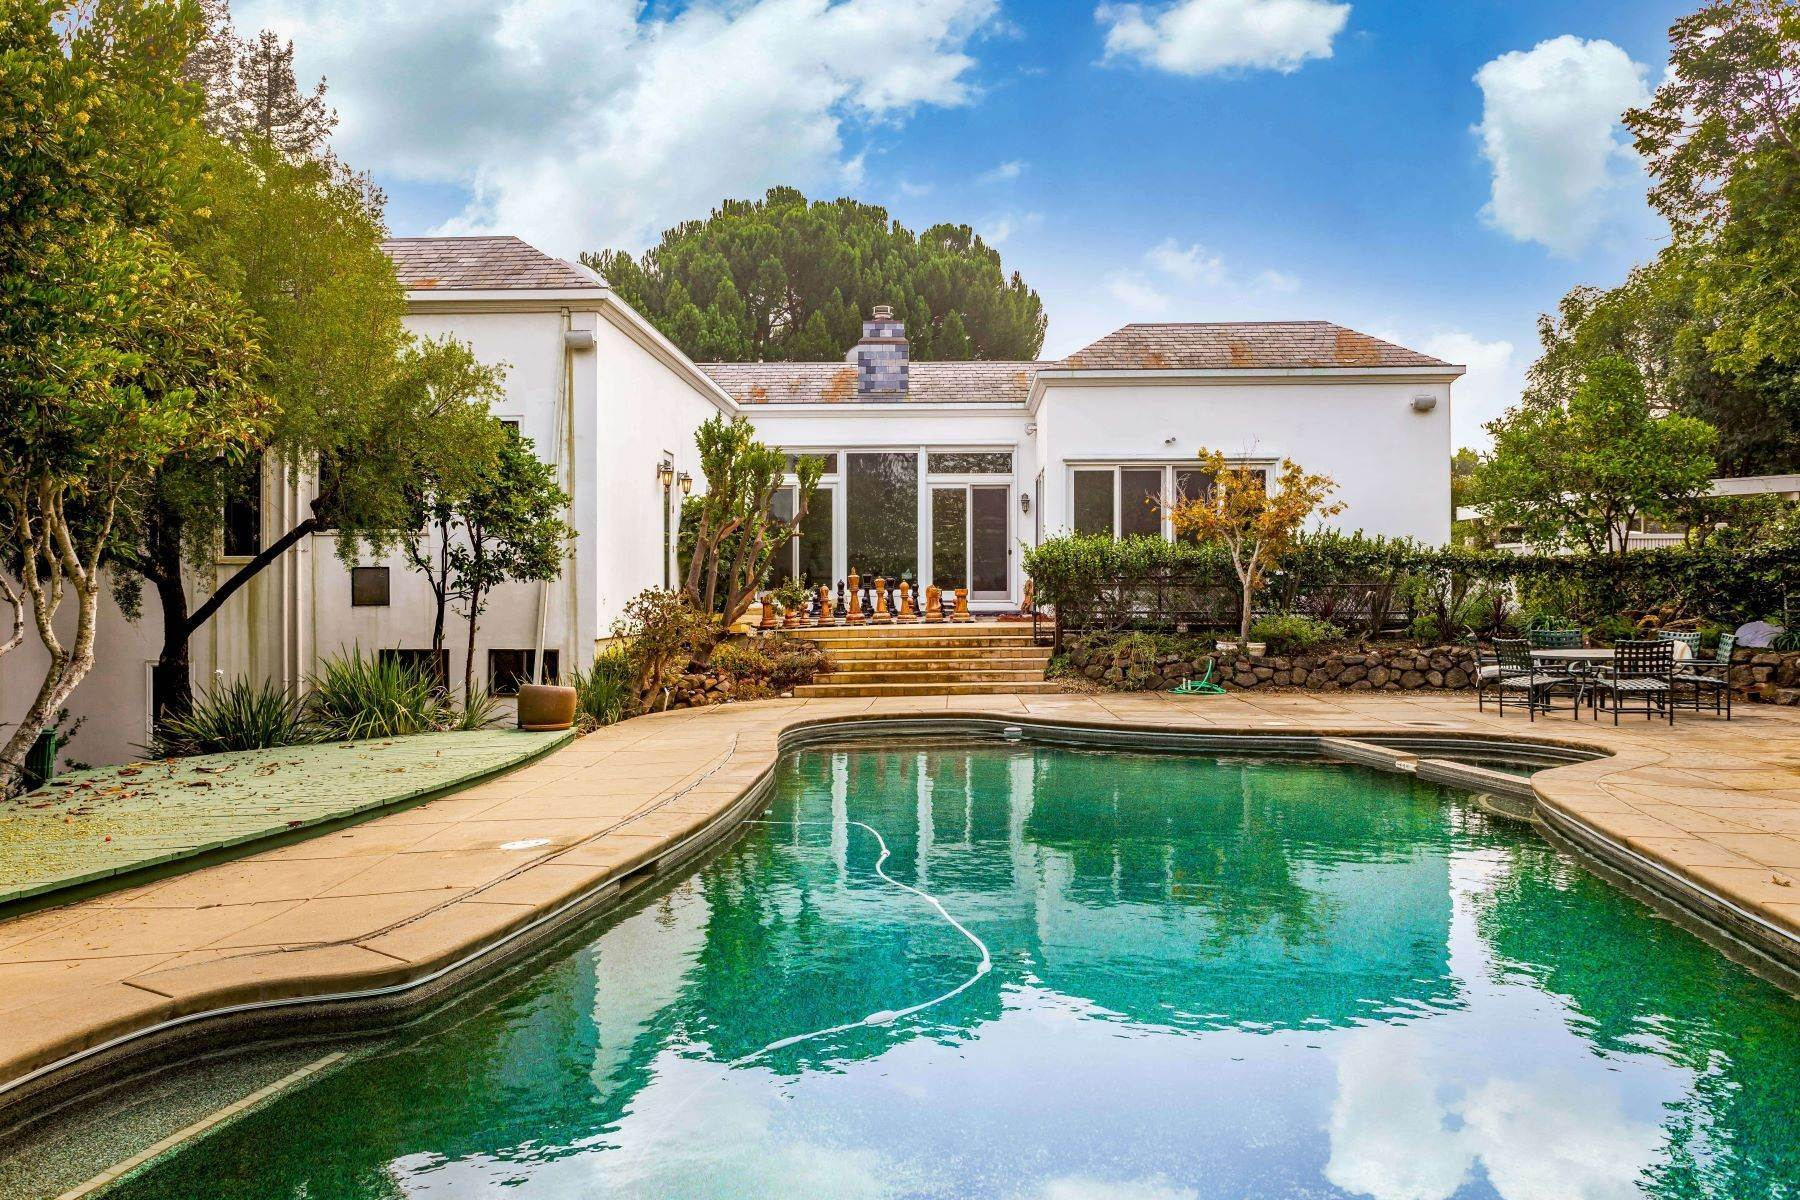 5. Single Family Homes for Sale at Prestige lifestyle, Huge Lot with Swimming Pool and Tennis Court 4249 Manuela Court Palo Alto, California 94306 United States